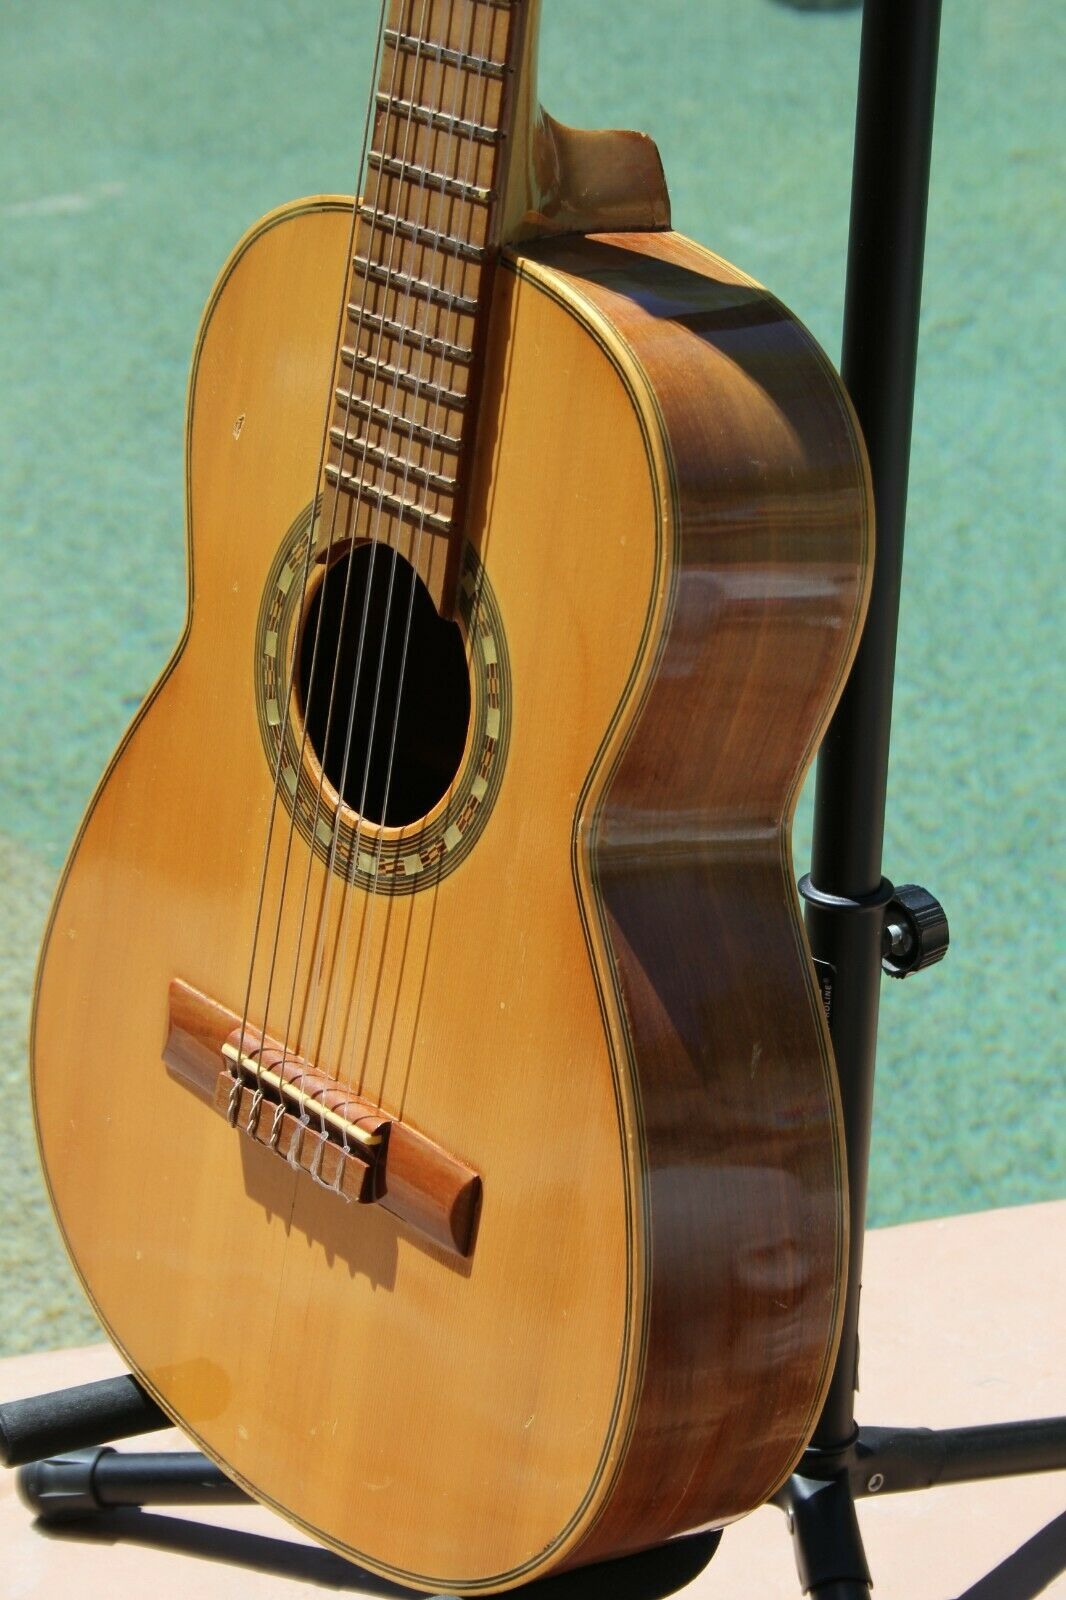 s l1600 - VINTAGE ACOUSTIC  GUITAR MADE IN VALENCIA SPAIN